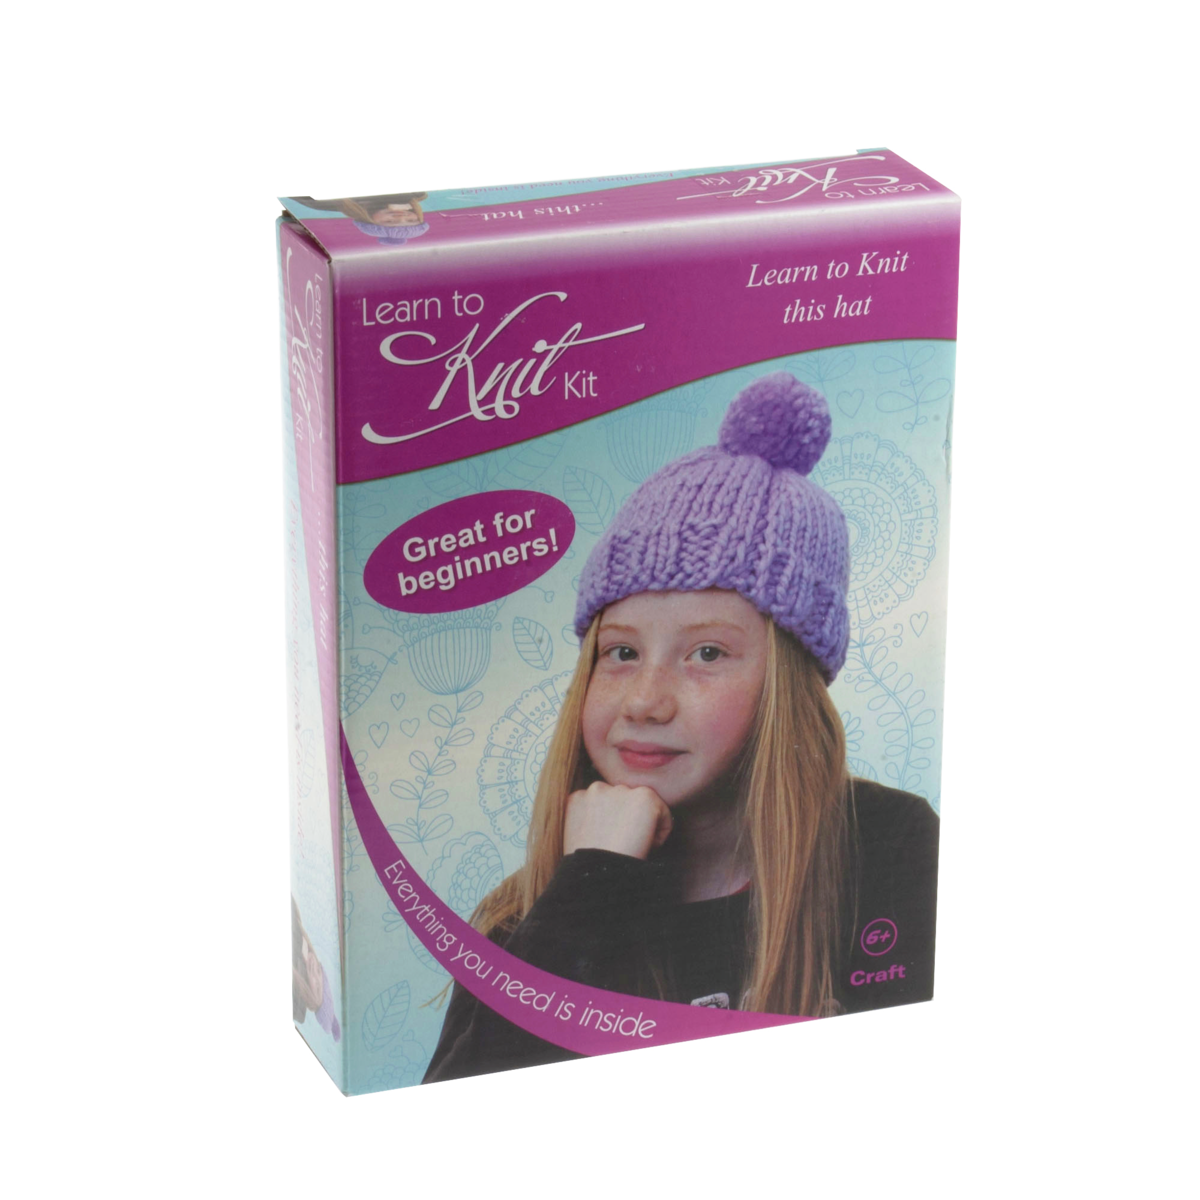 Knitting Kits For Beginners Uk : Learn to knit kit hat habbydays